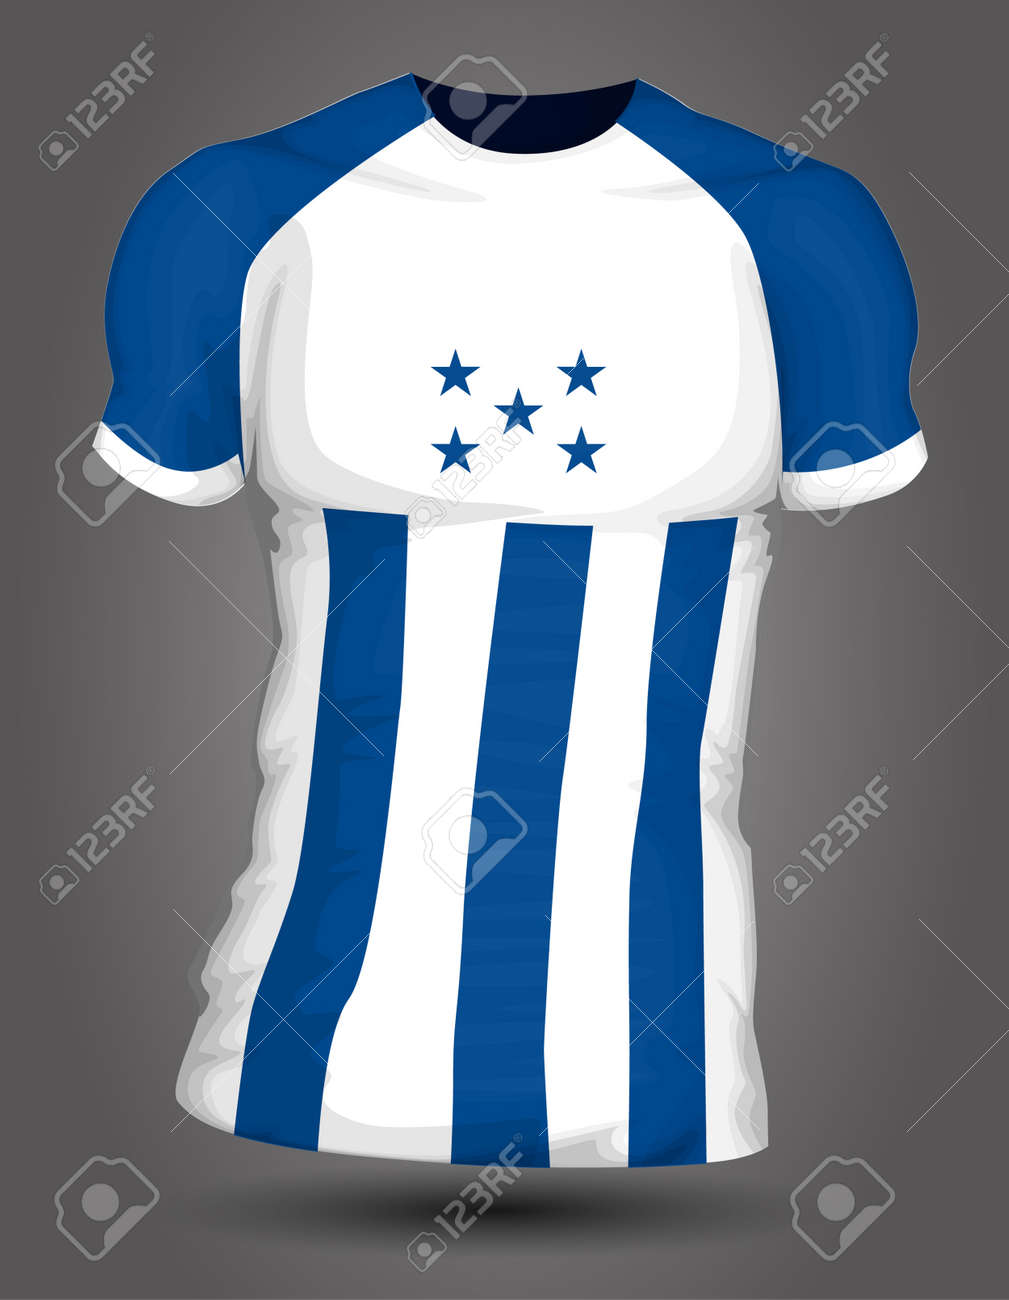 sports shoes 81270 14f82 Honduras soccer jersey